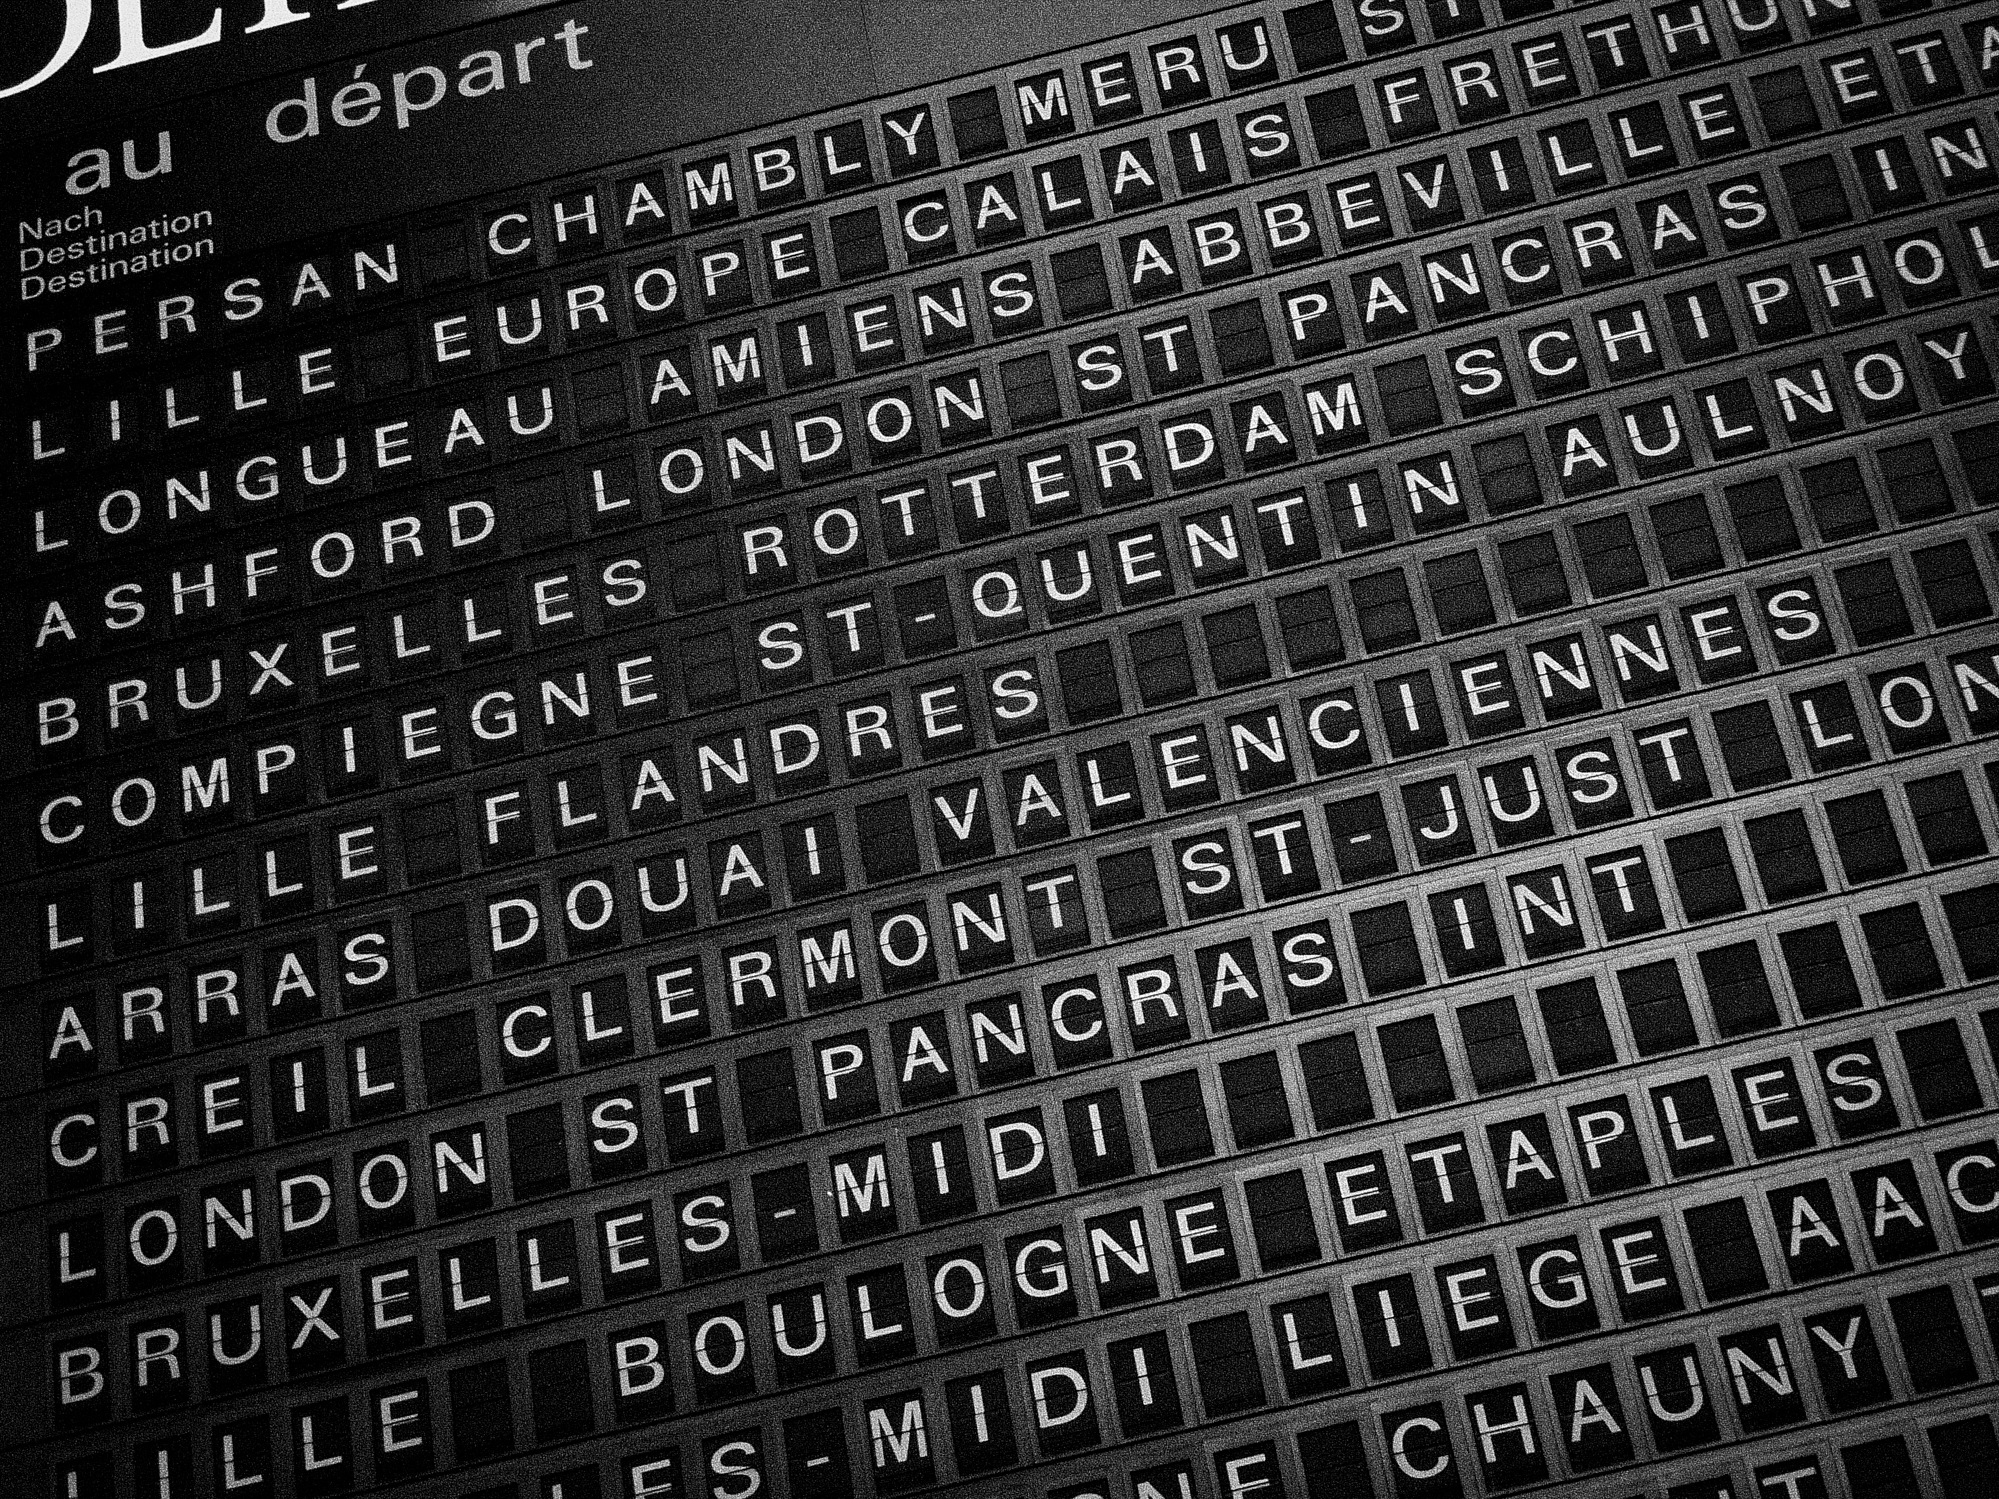 Arival departure screen clipart graphic freeuse Arrival and Departure on airport information board image - Free ... graphic freeuse